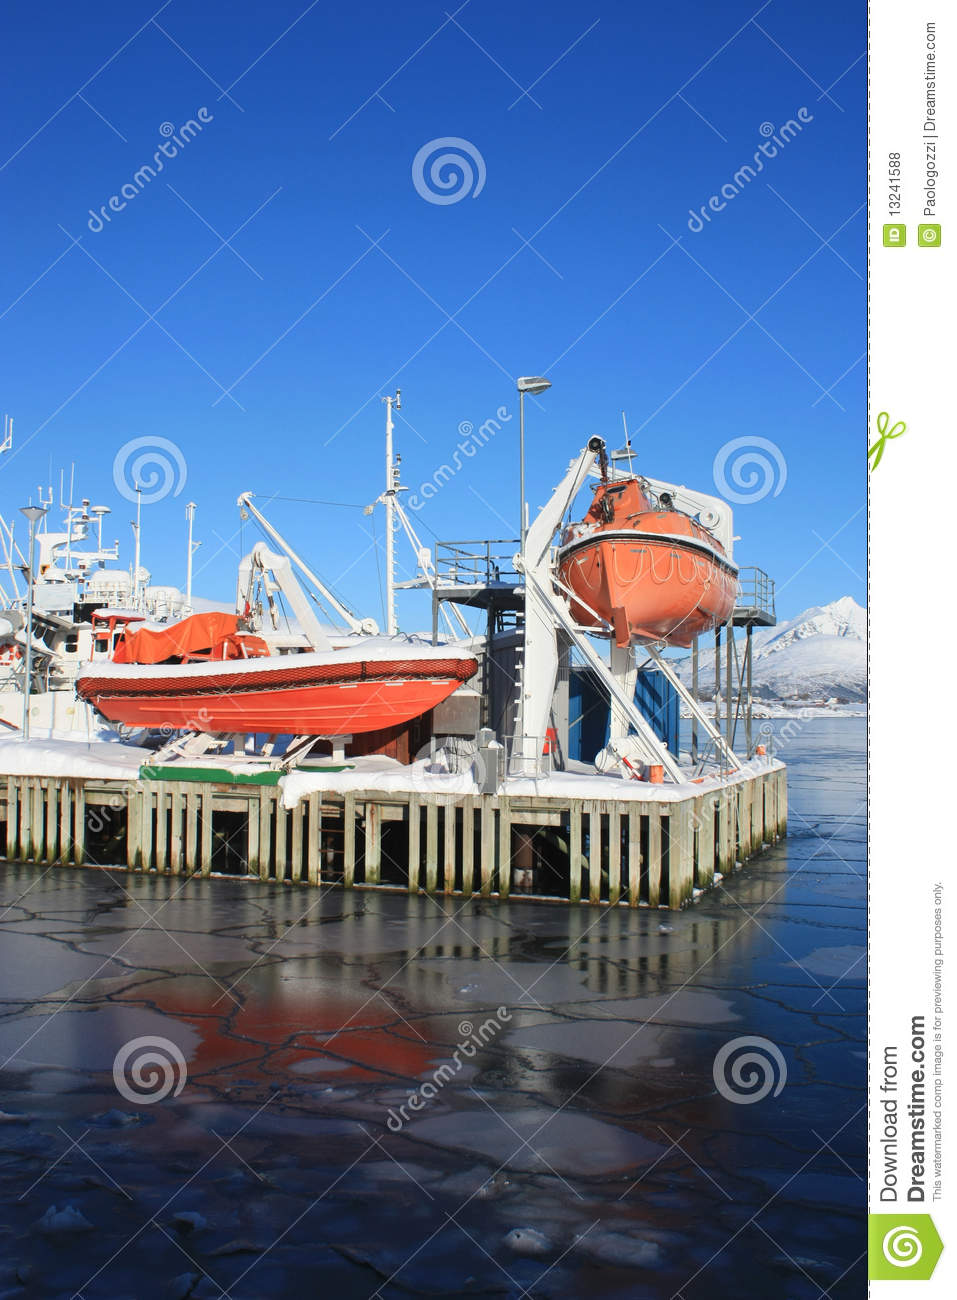 Safety boat and icy sea